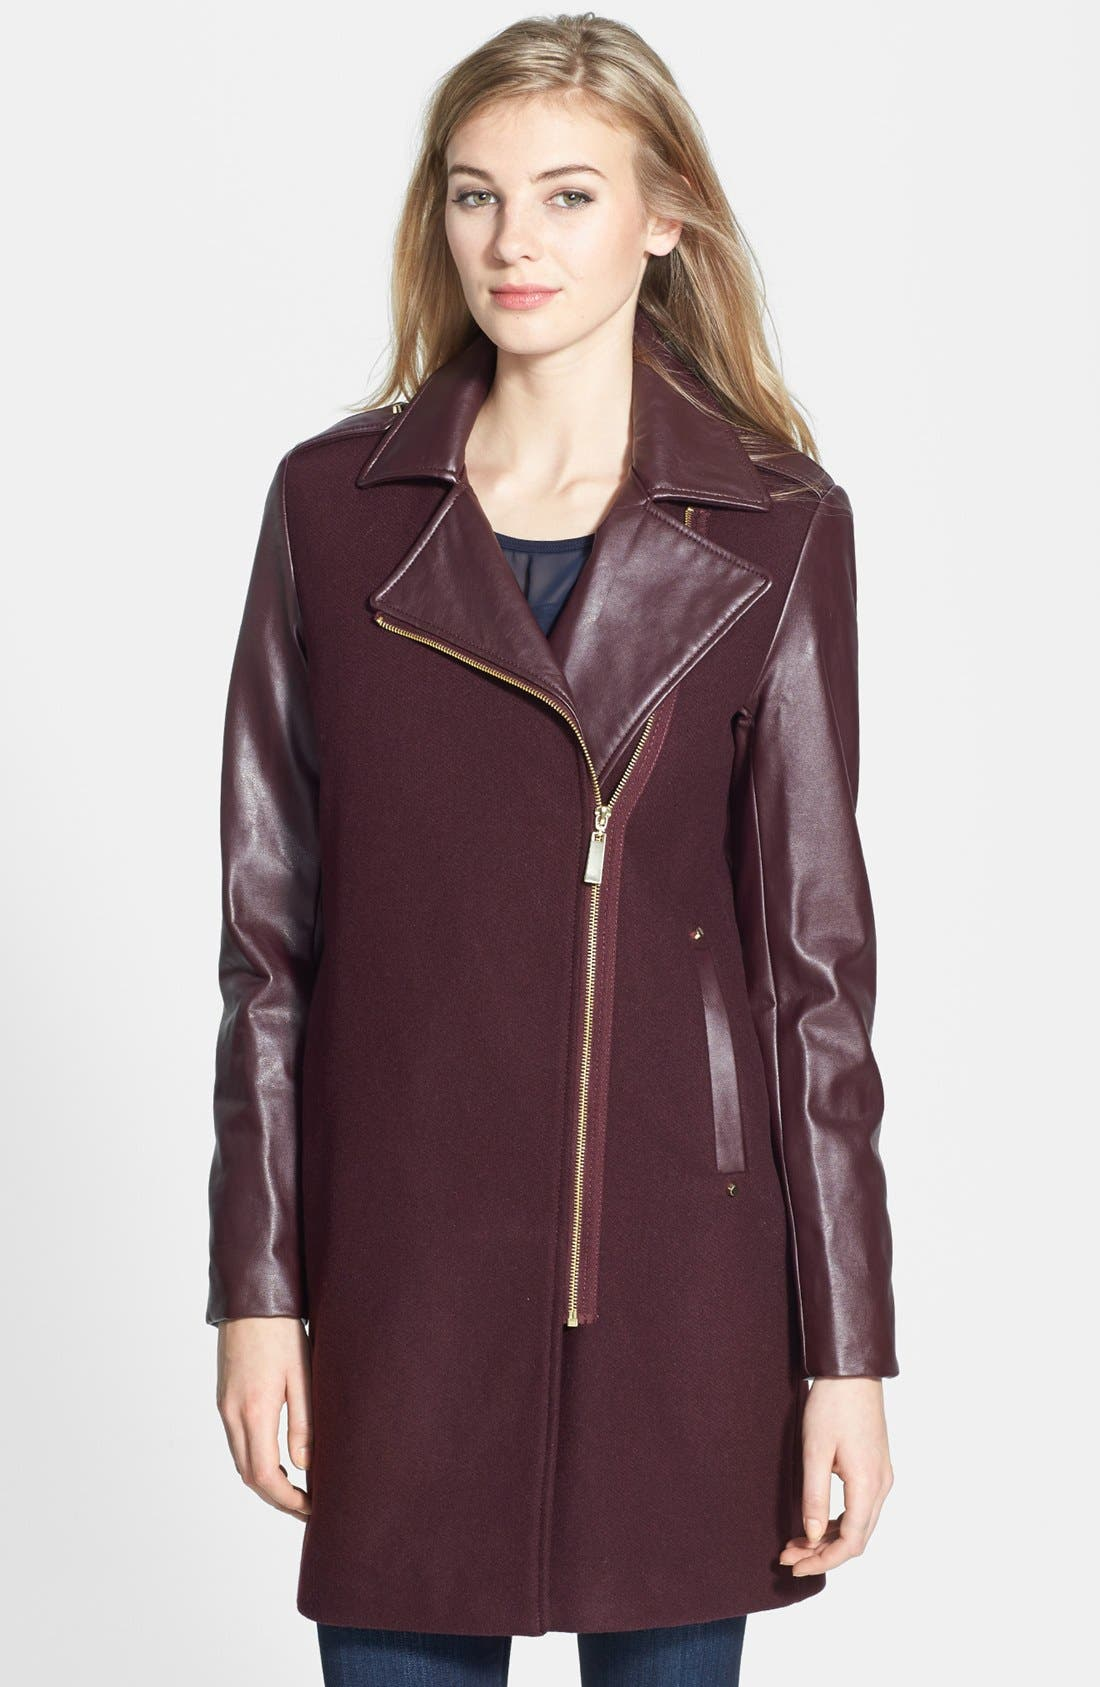 Main Image - Vince Camuto Asymmetrical Zip Wool Blend & Faux Leather Coat